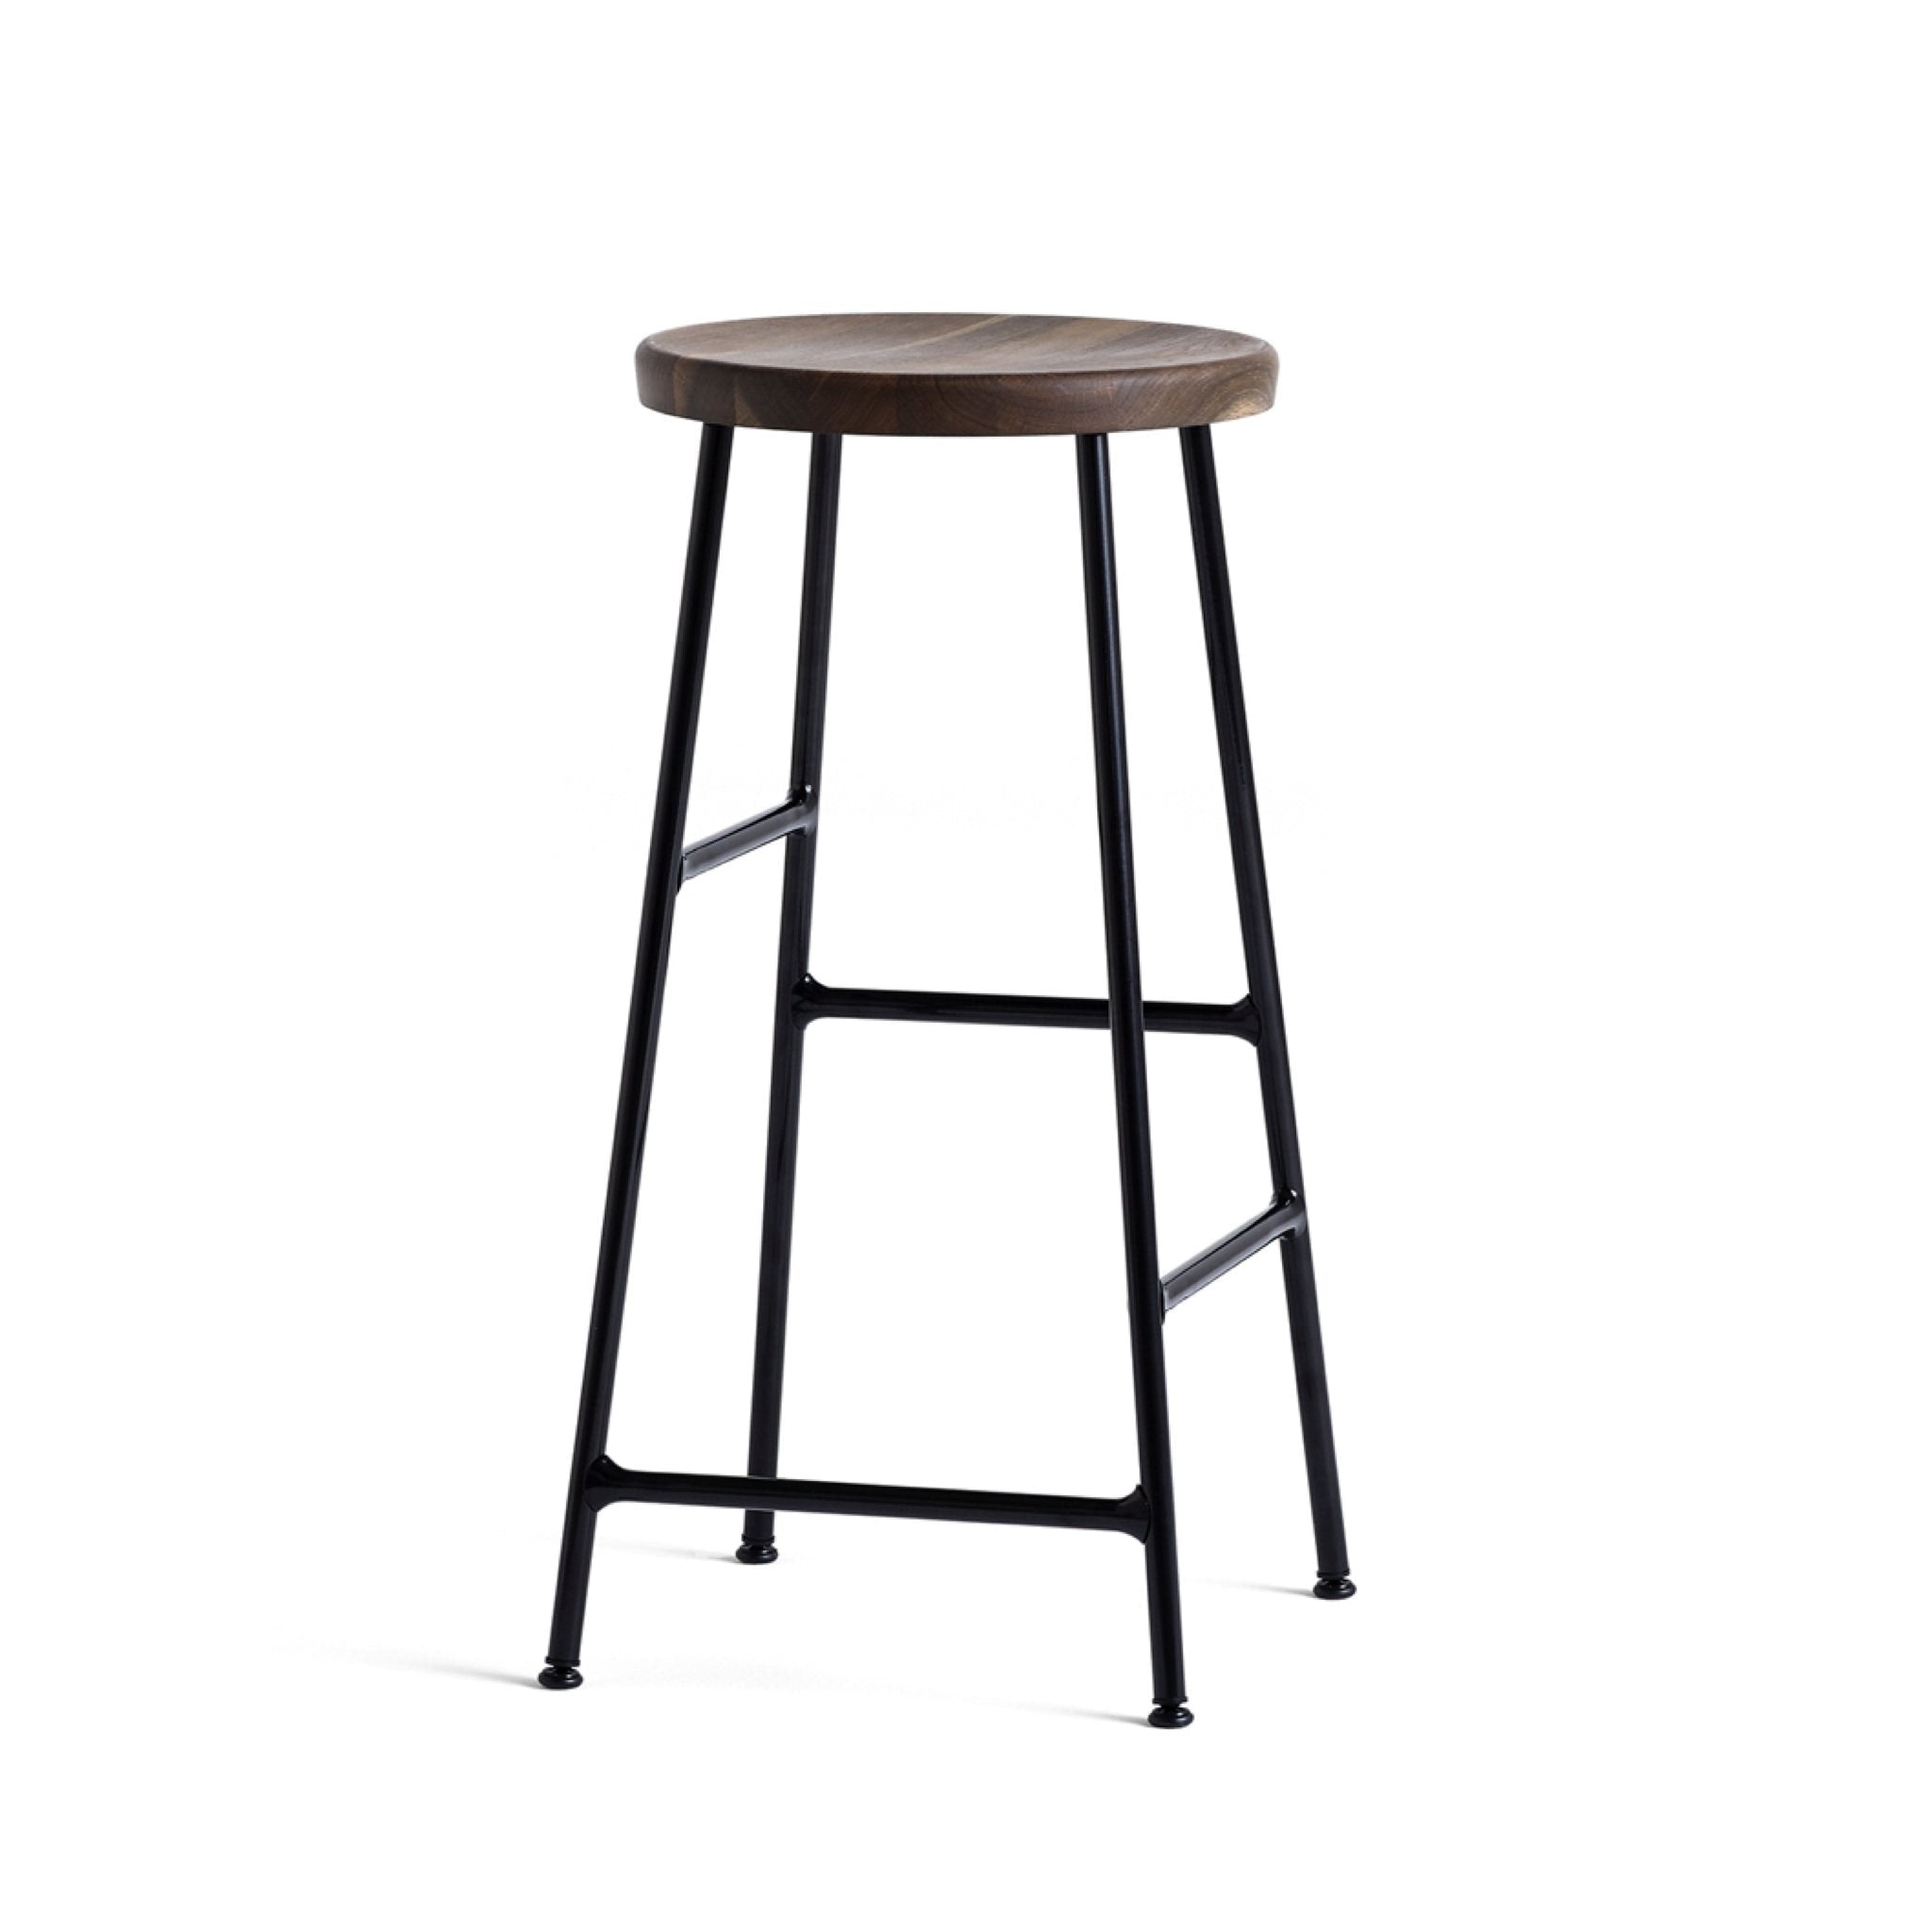 Cornet Bar Stool by Hay